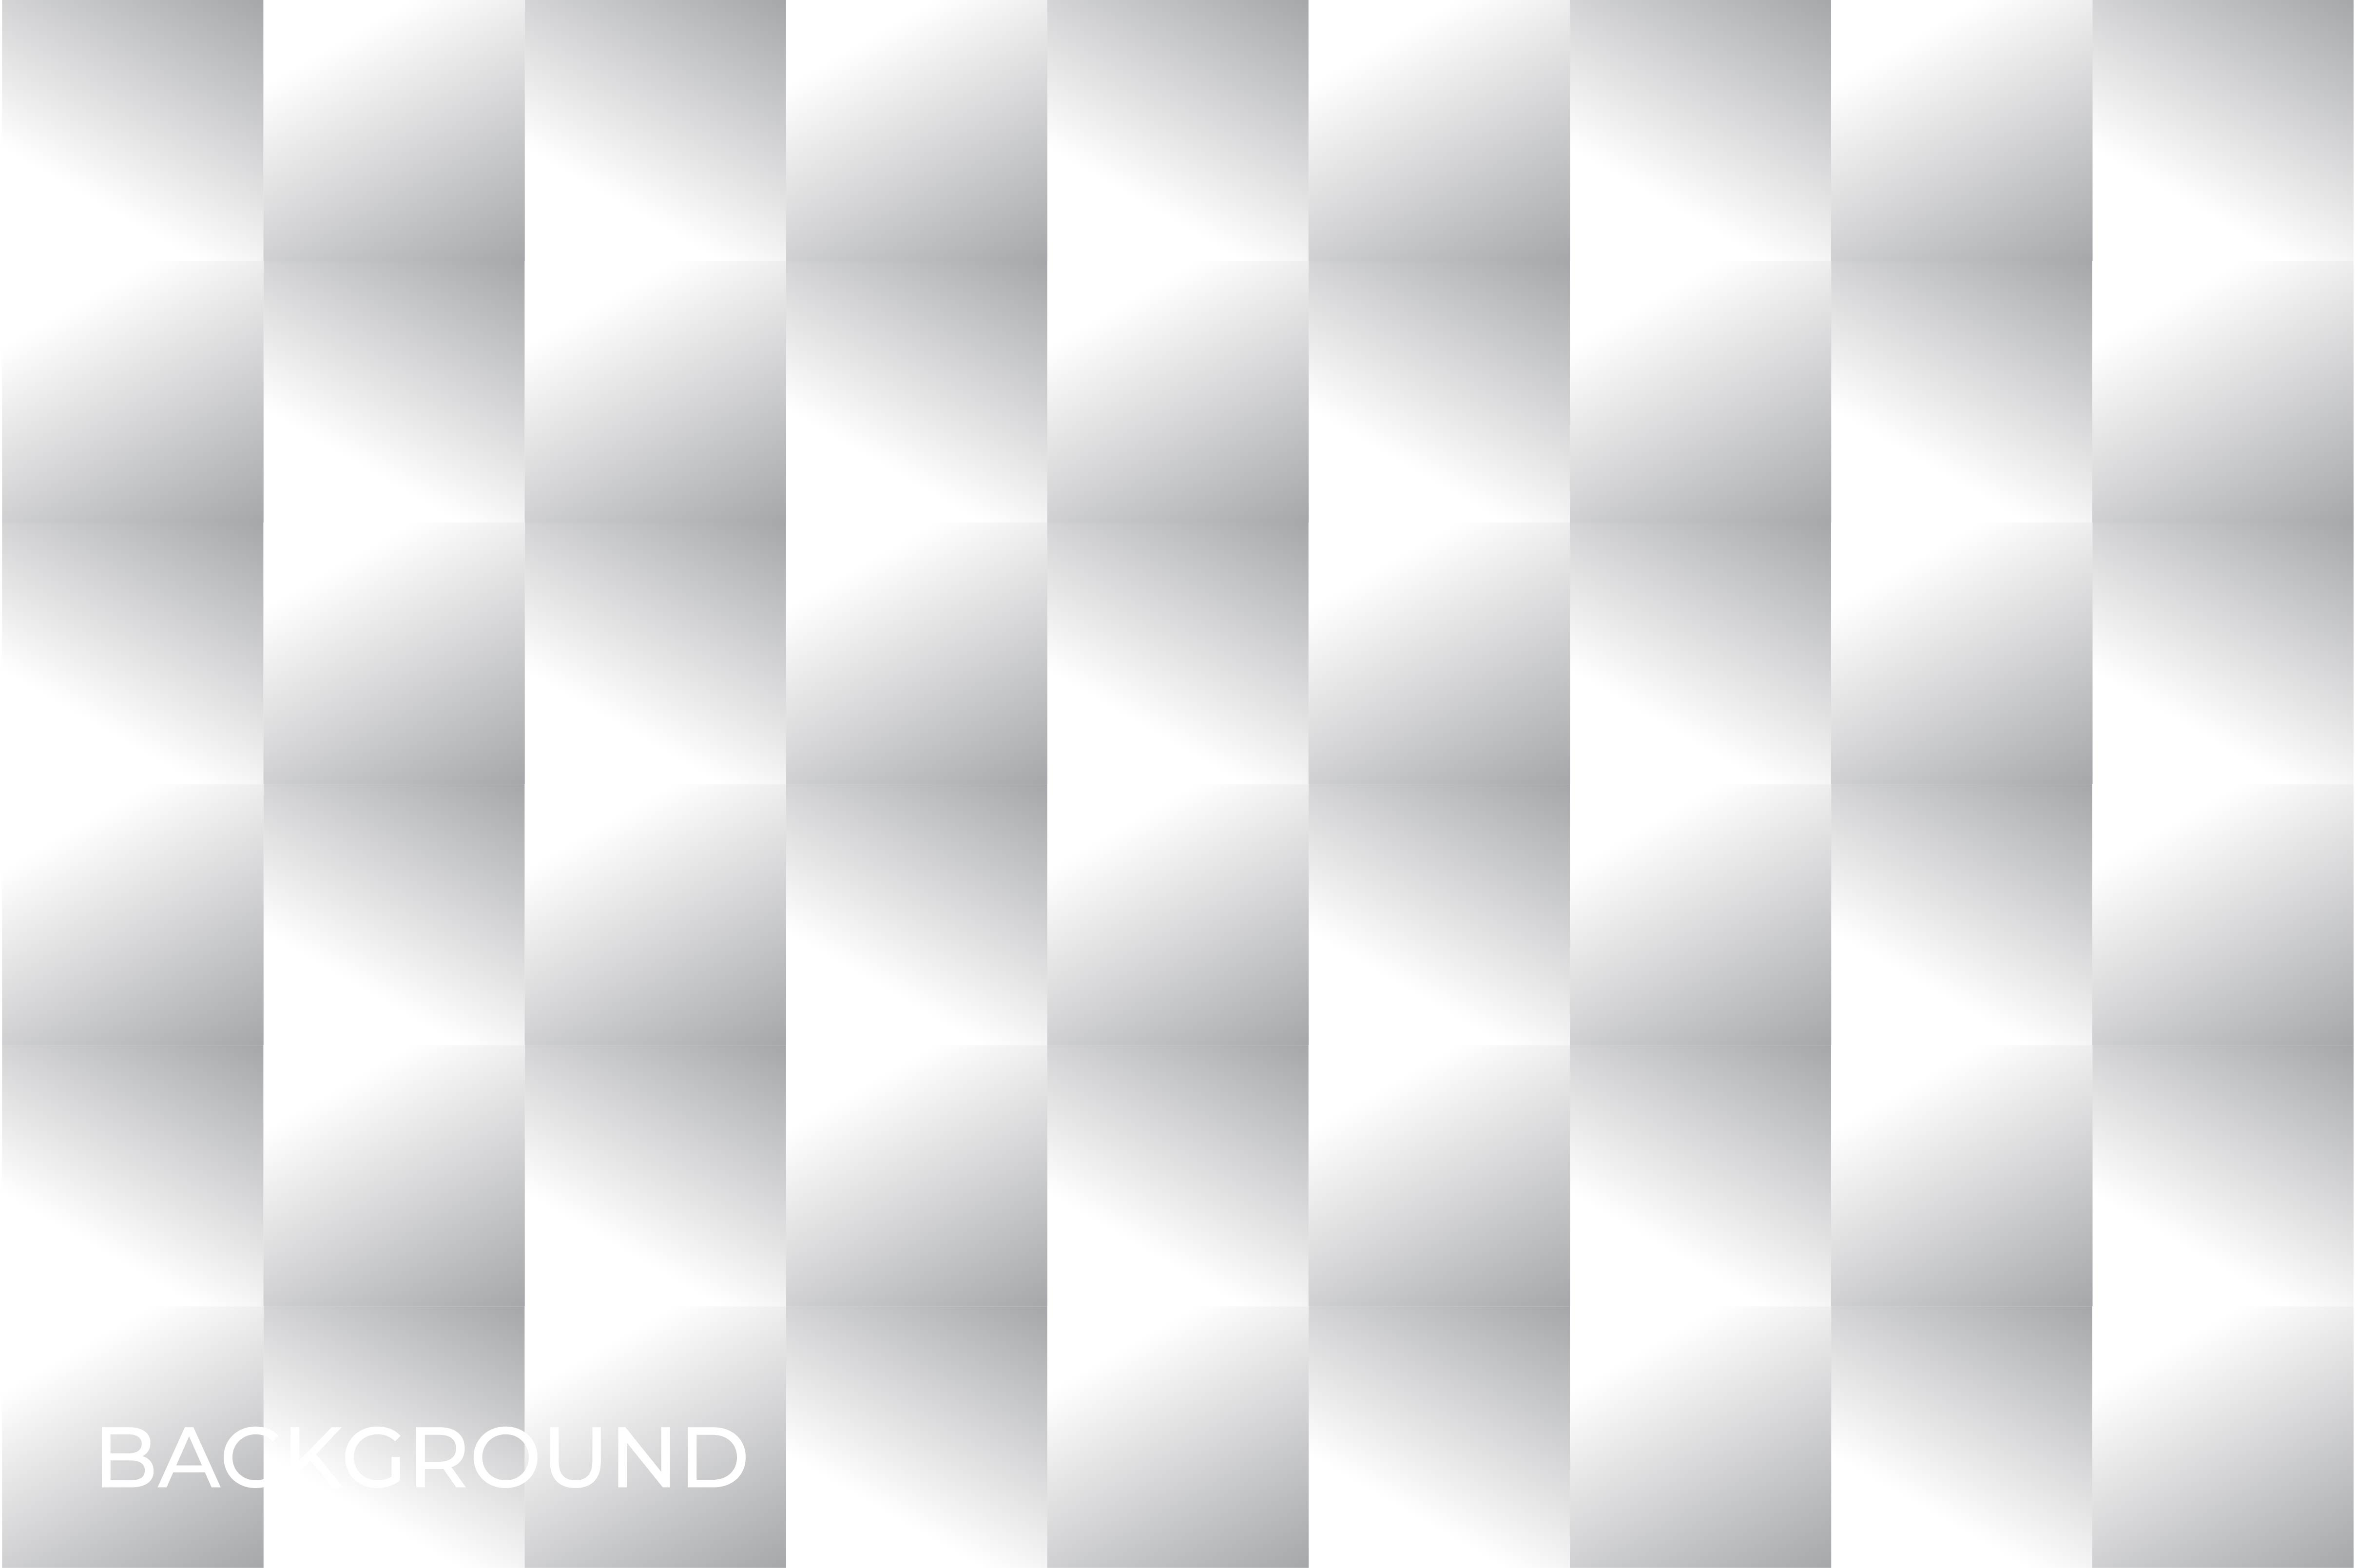 Download Free Abstract White And Gray Color Background Graphic By Frog Ground for Cricut Explore, Silhouette and other cutting machines.